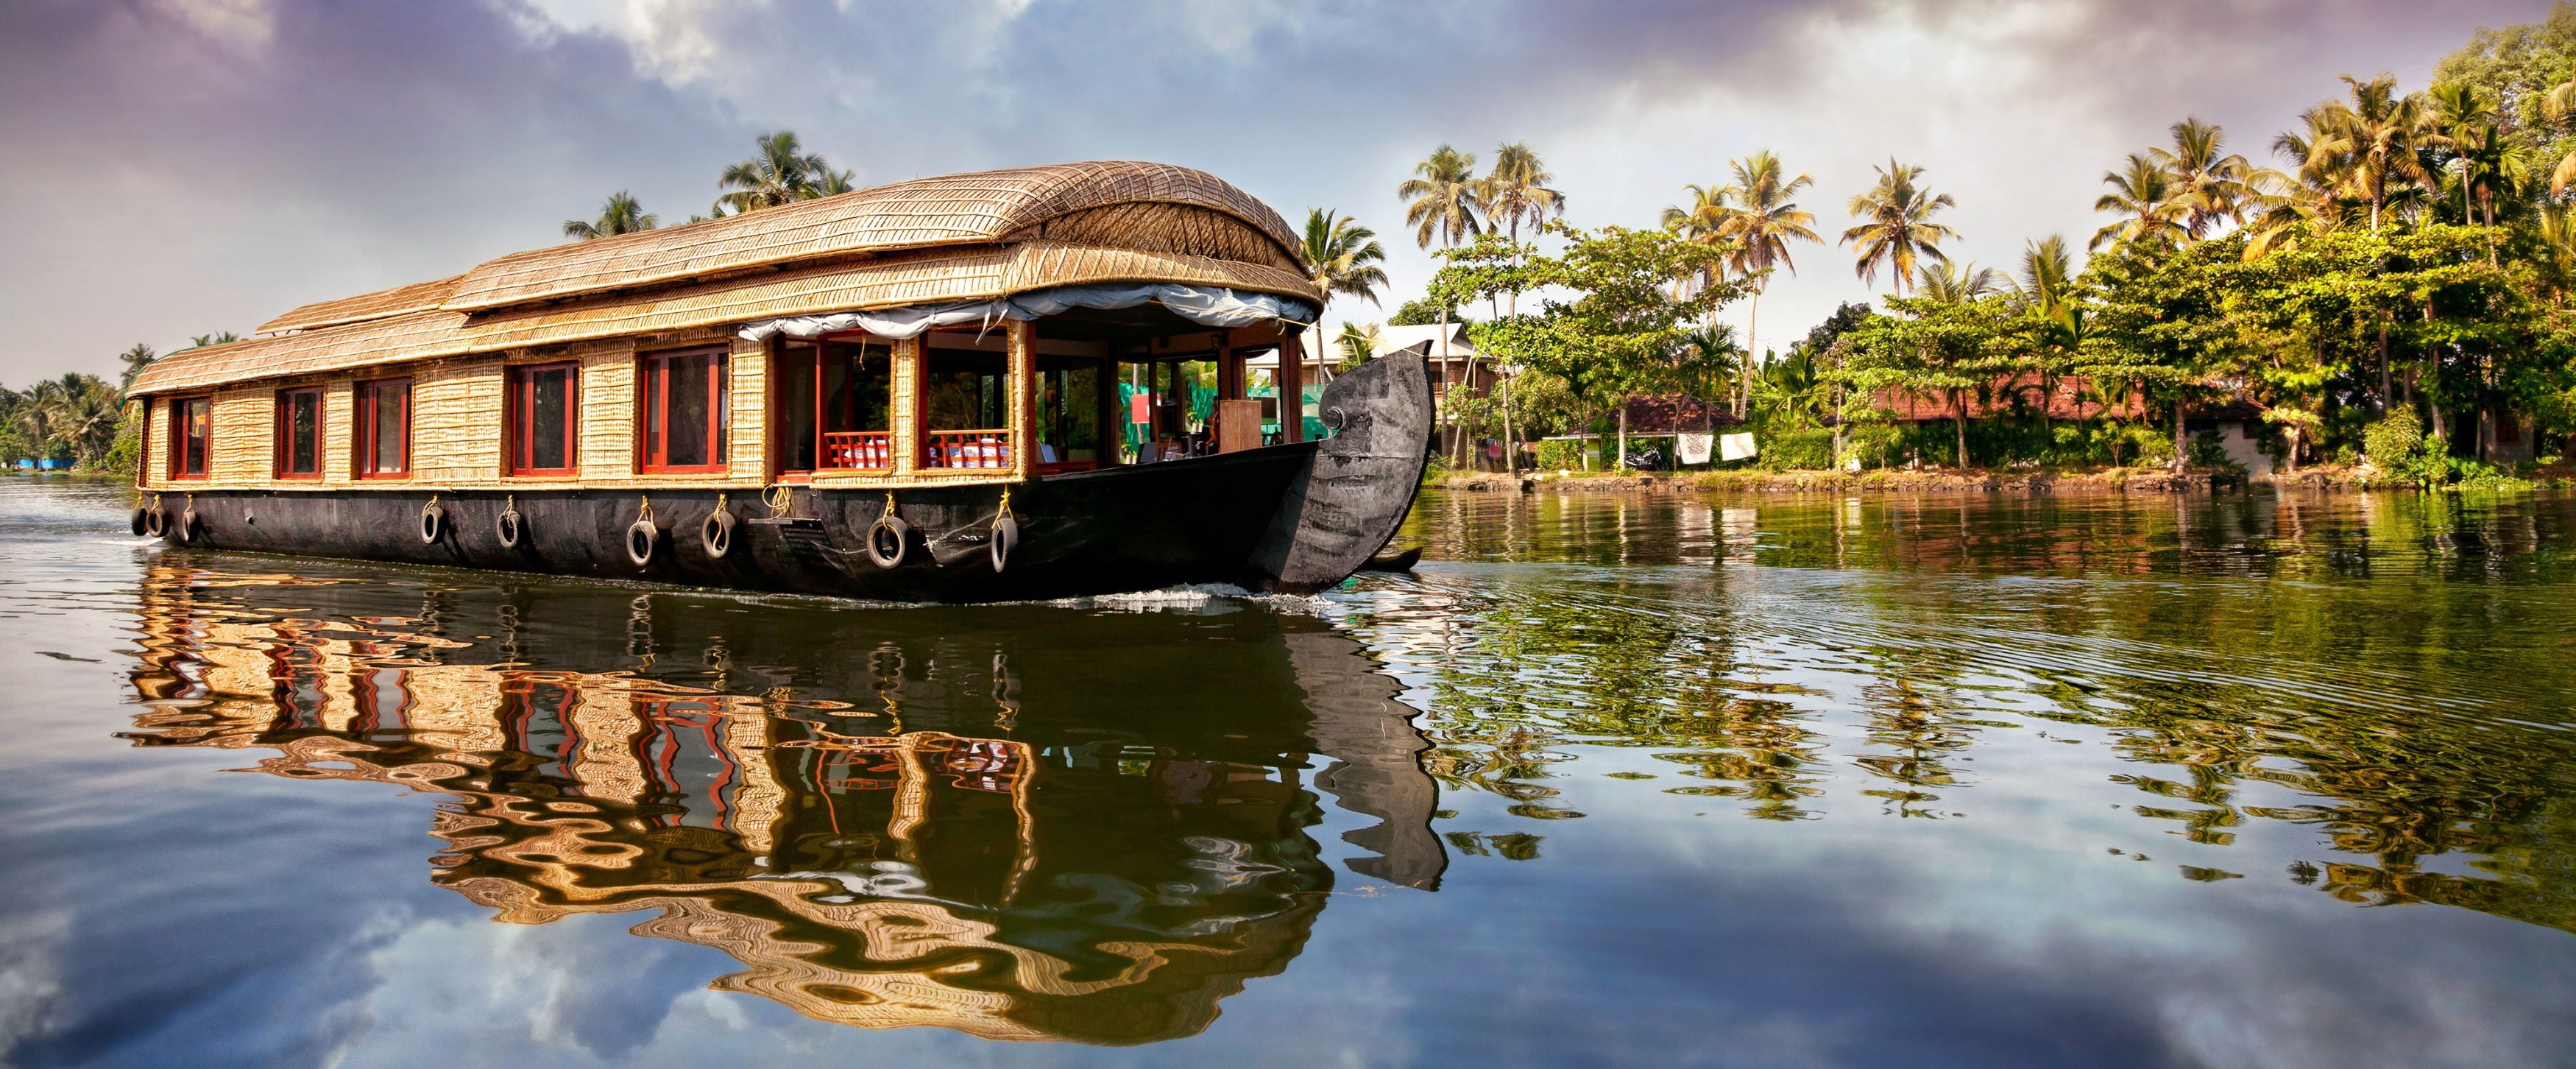 Kerala (Backwaters) - things to do in India